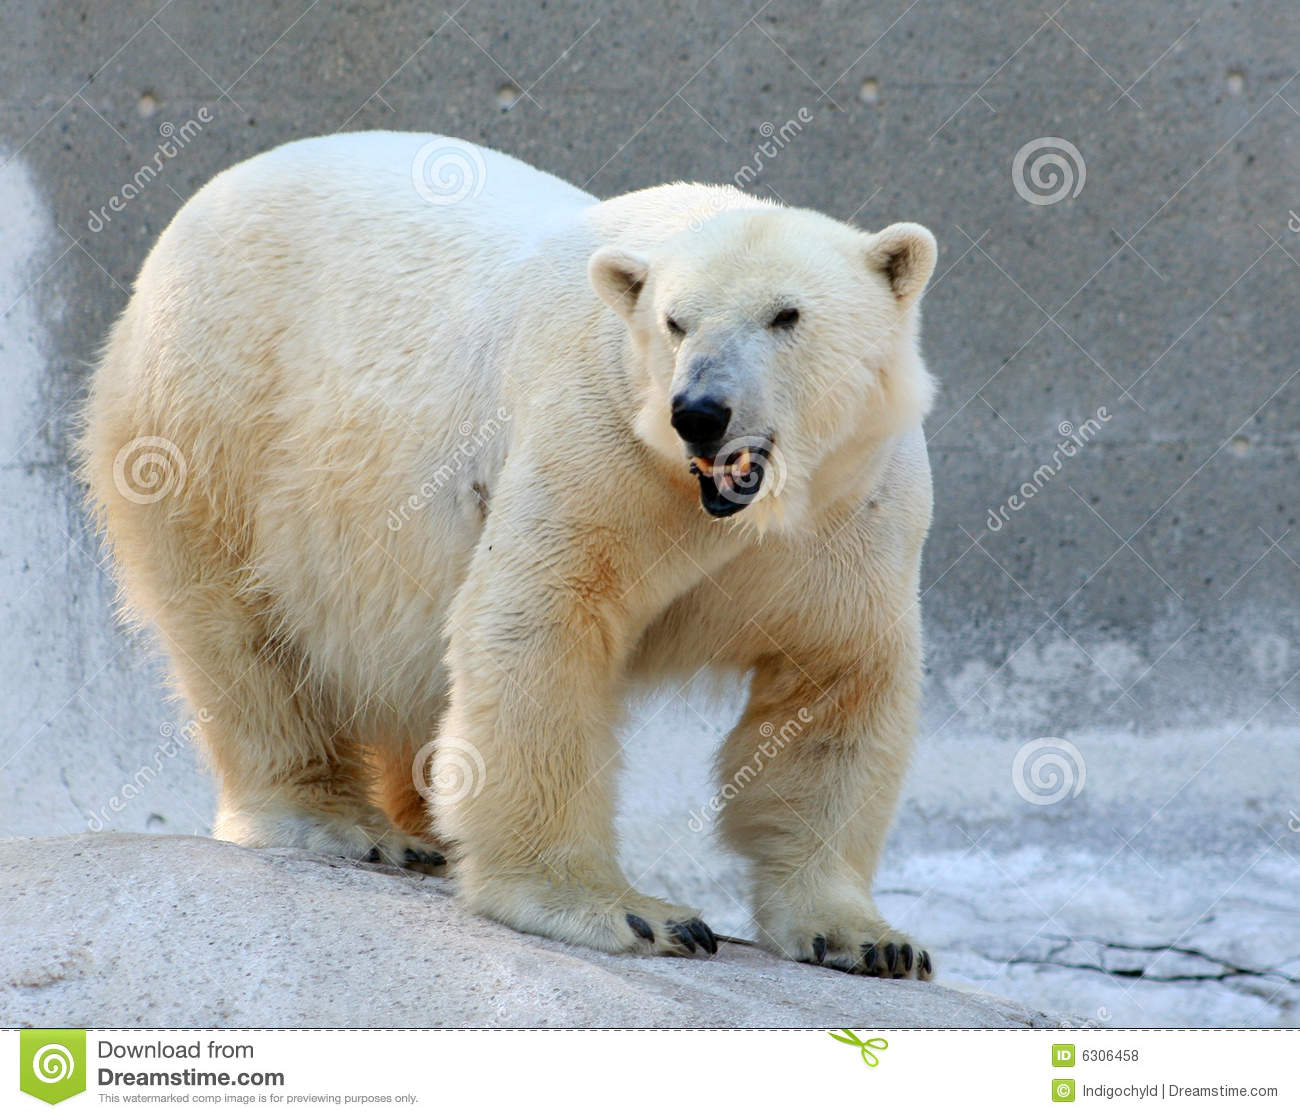 Polar bear smiling - photo#8